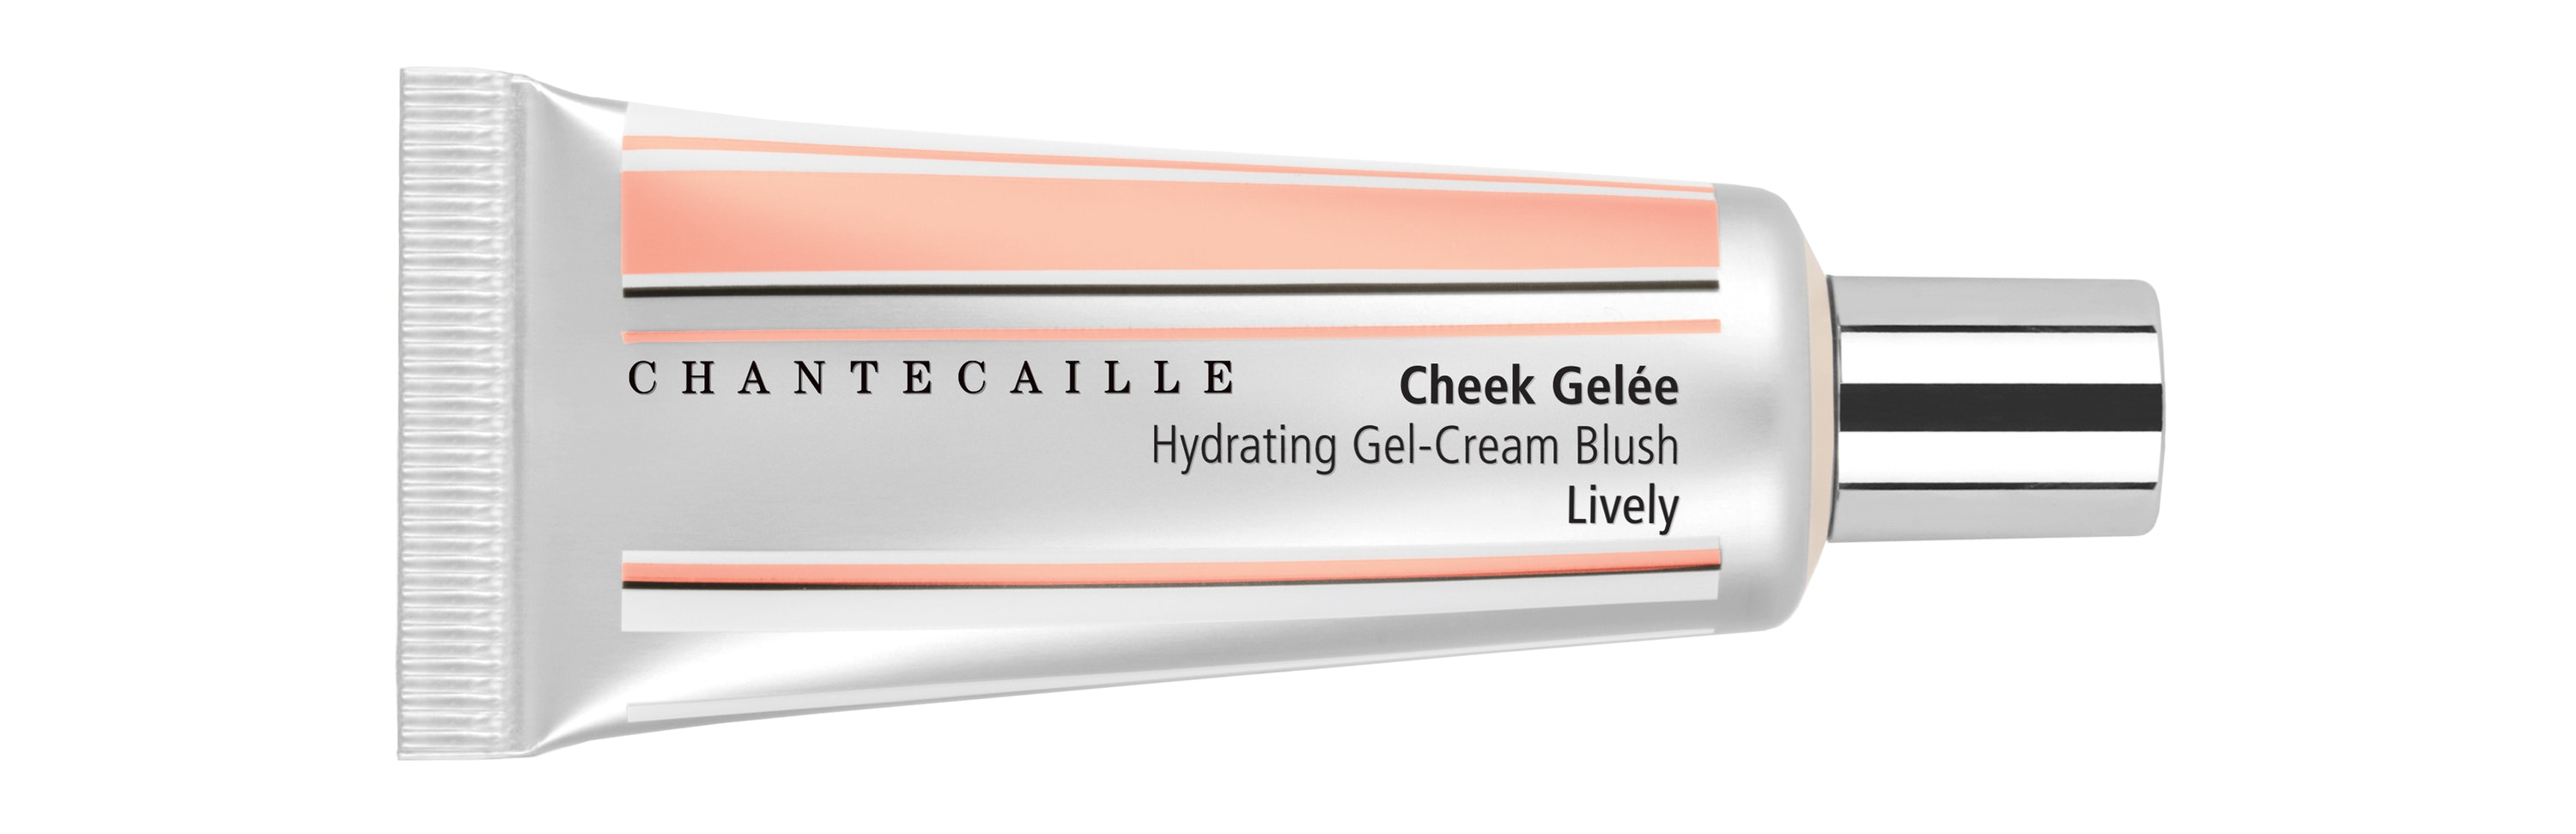 Chantecaille Cheek Gelee in Lively